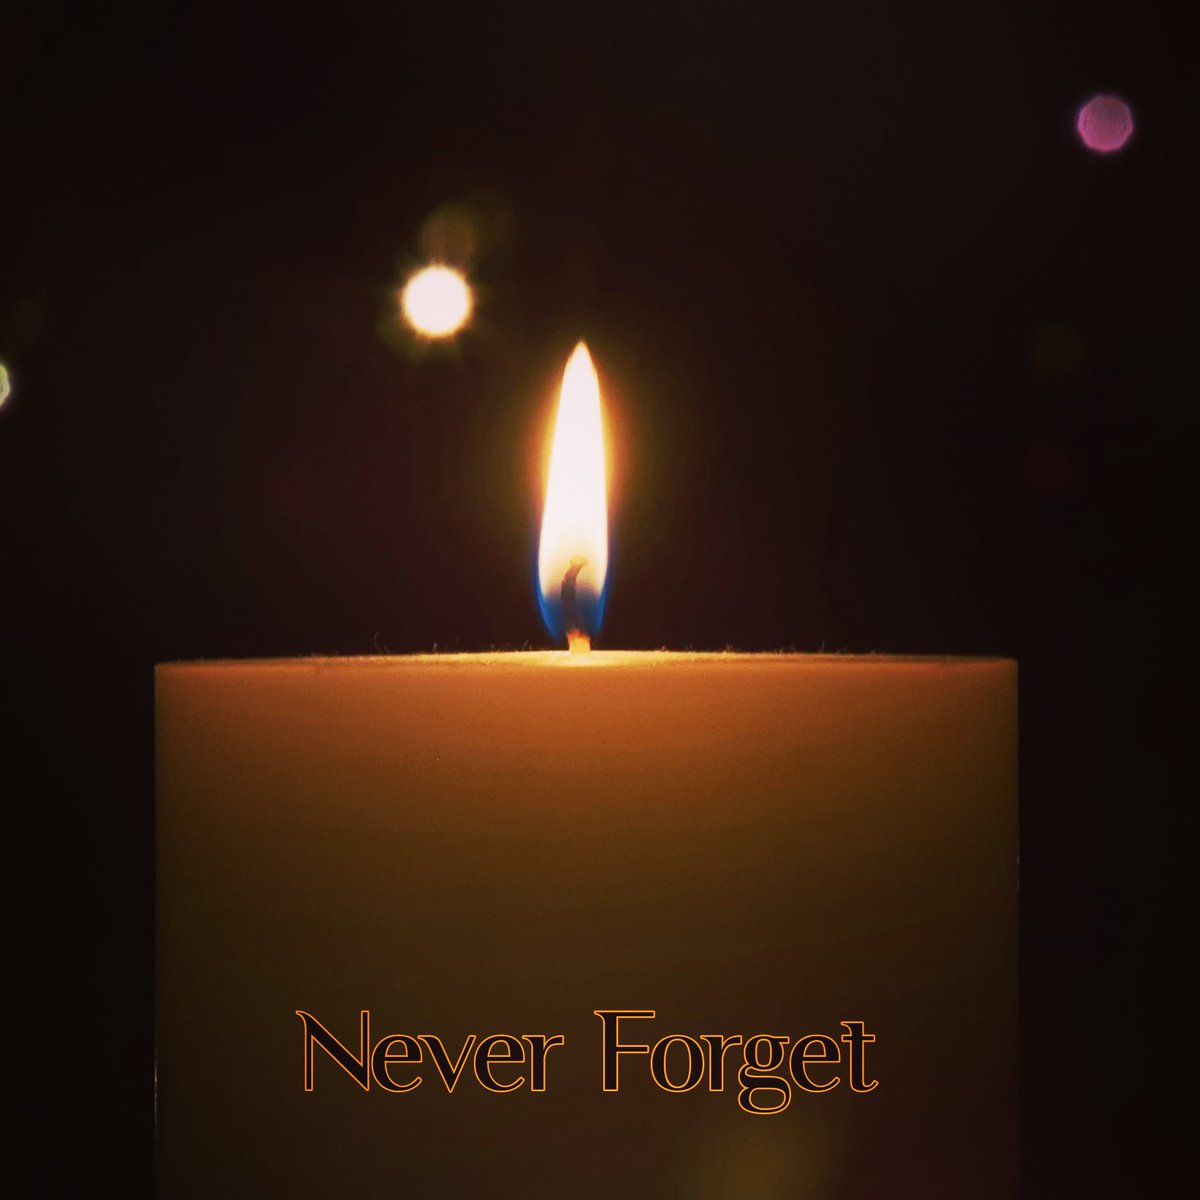 Today is #HolocaustRemembranceDay 2021.  We remember the six million Jews murdered in the Holocaust, as well as the millions of targeted people whose lives were destroyed by the senseless violence and hatred of the Nazis.   #WeRemember #NeverForget  #NeverAgain  #NoMoreHate